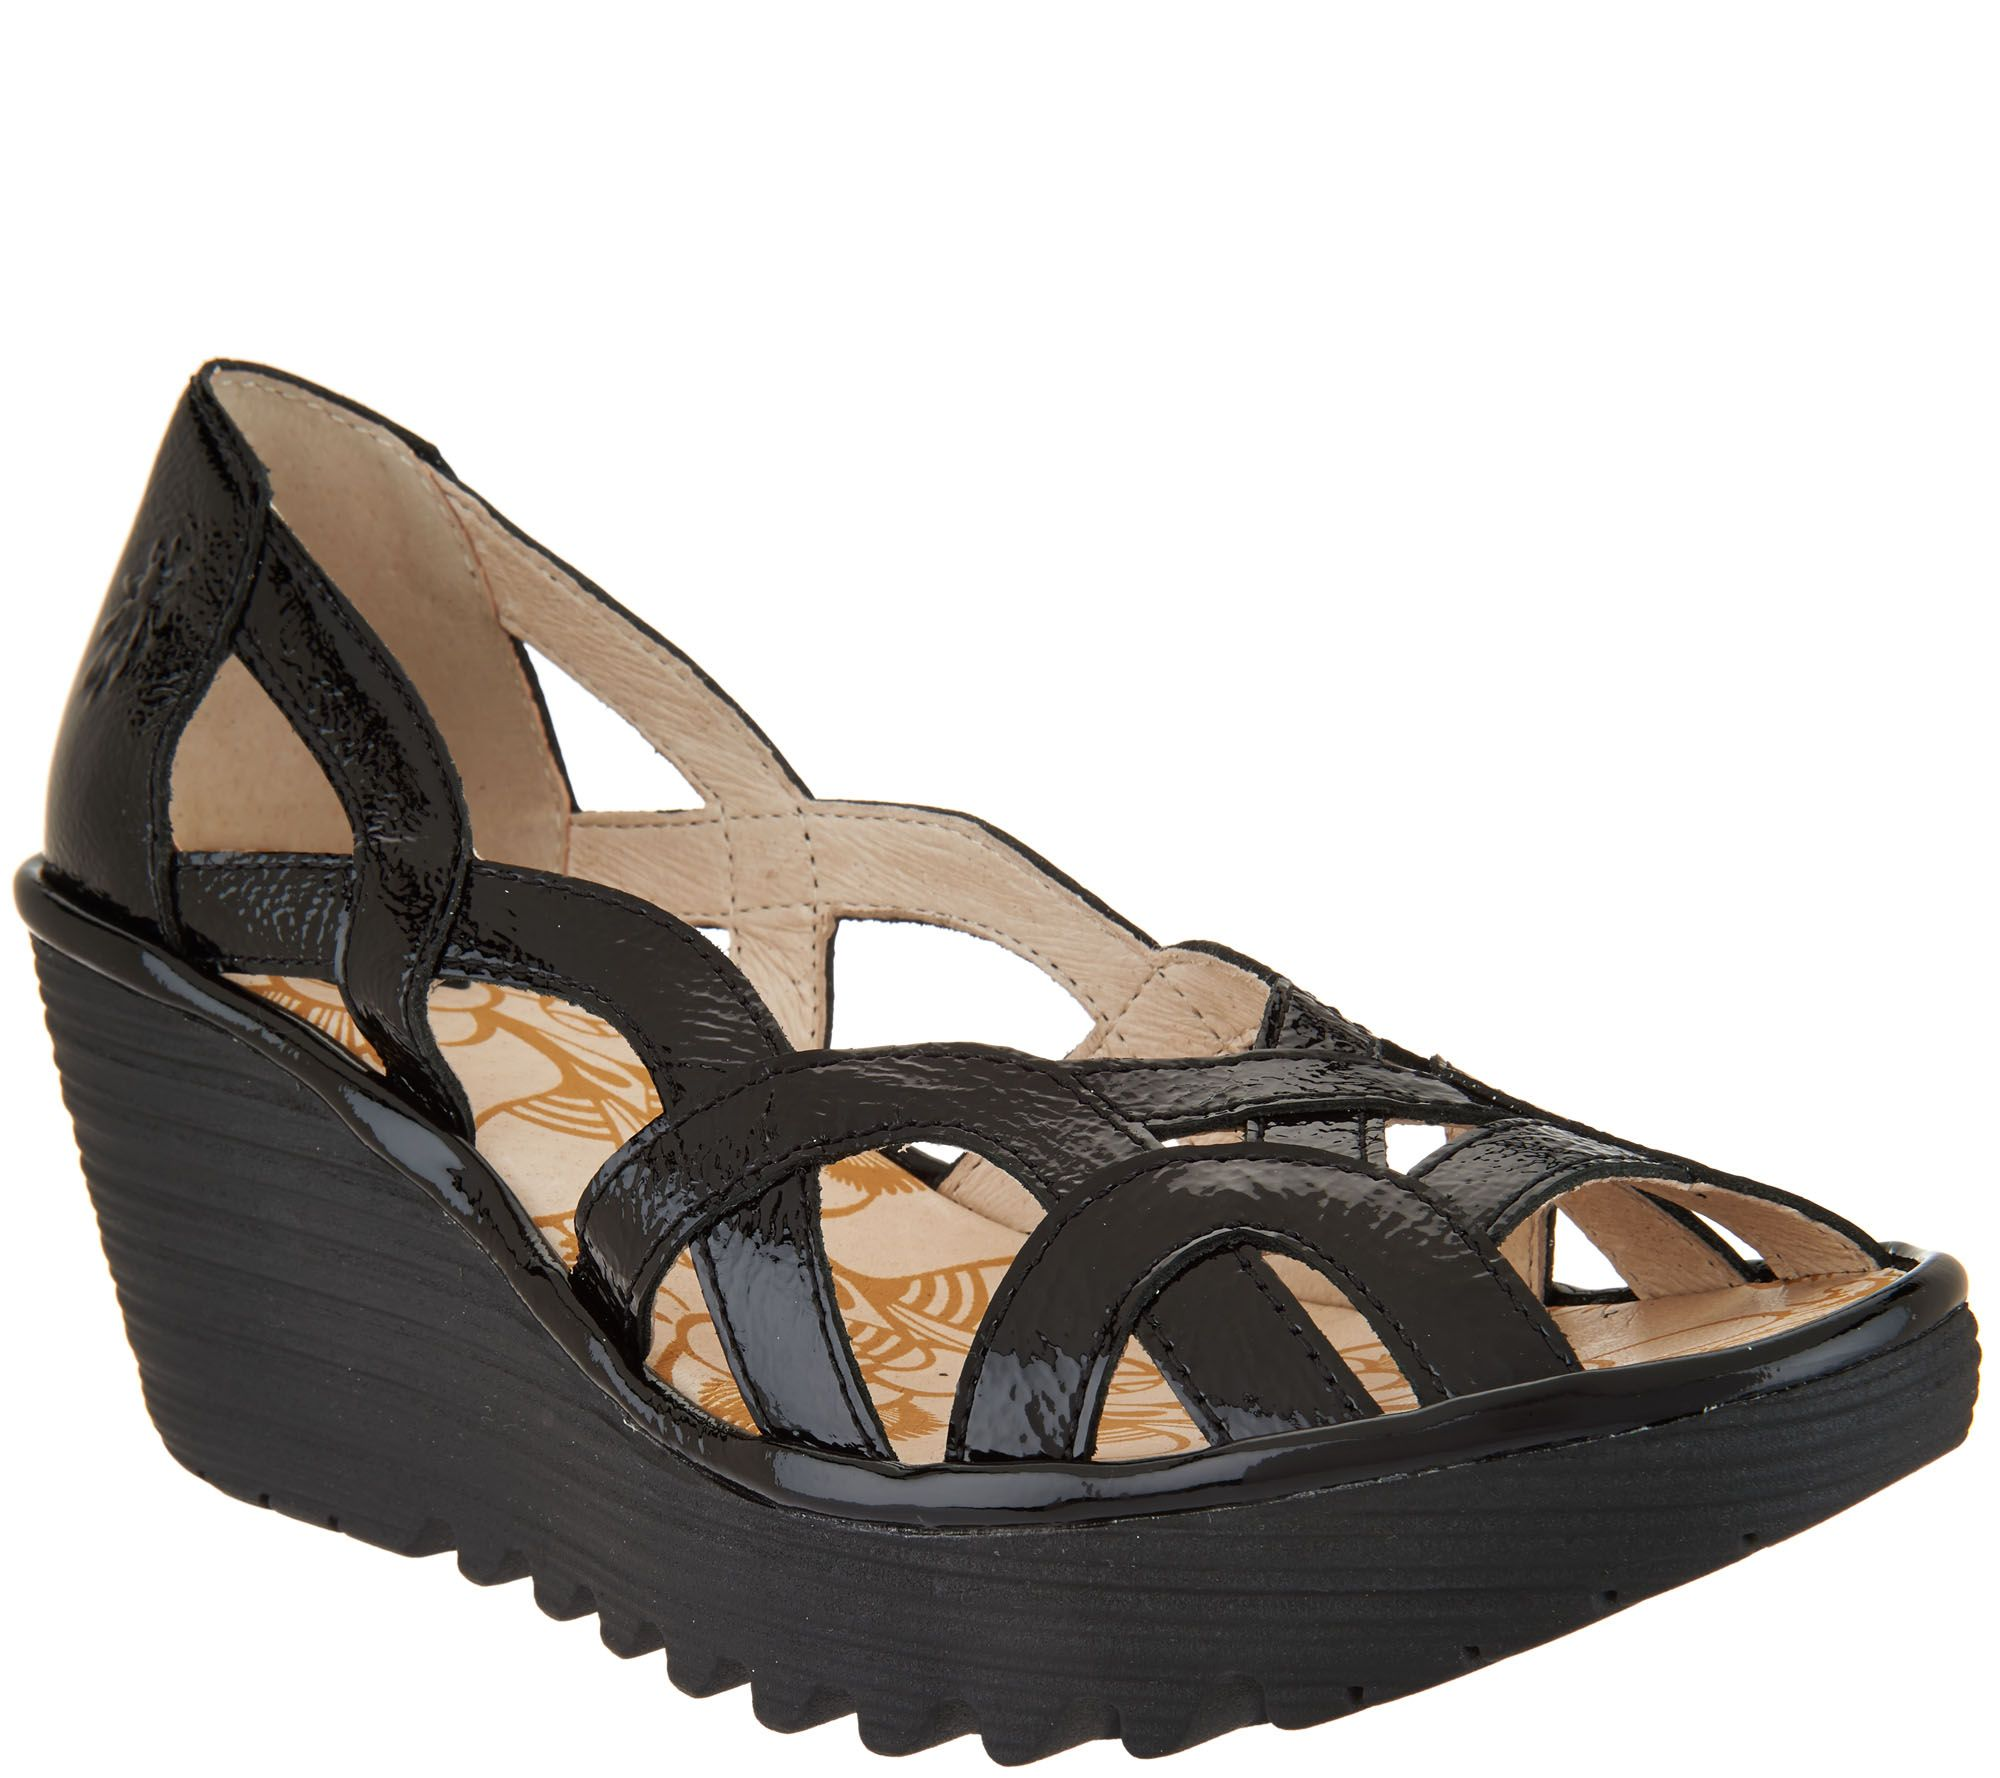 2e9fed2562c1 FLY London Leather Slip-on Wedge Sandals - Yadi - Page 1 — QVC.com